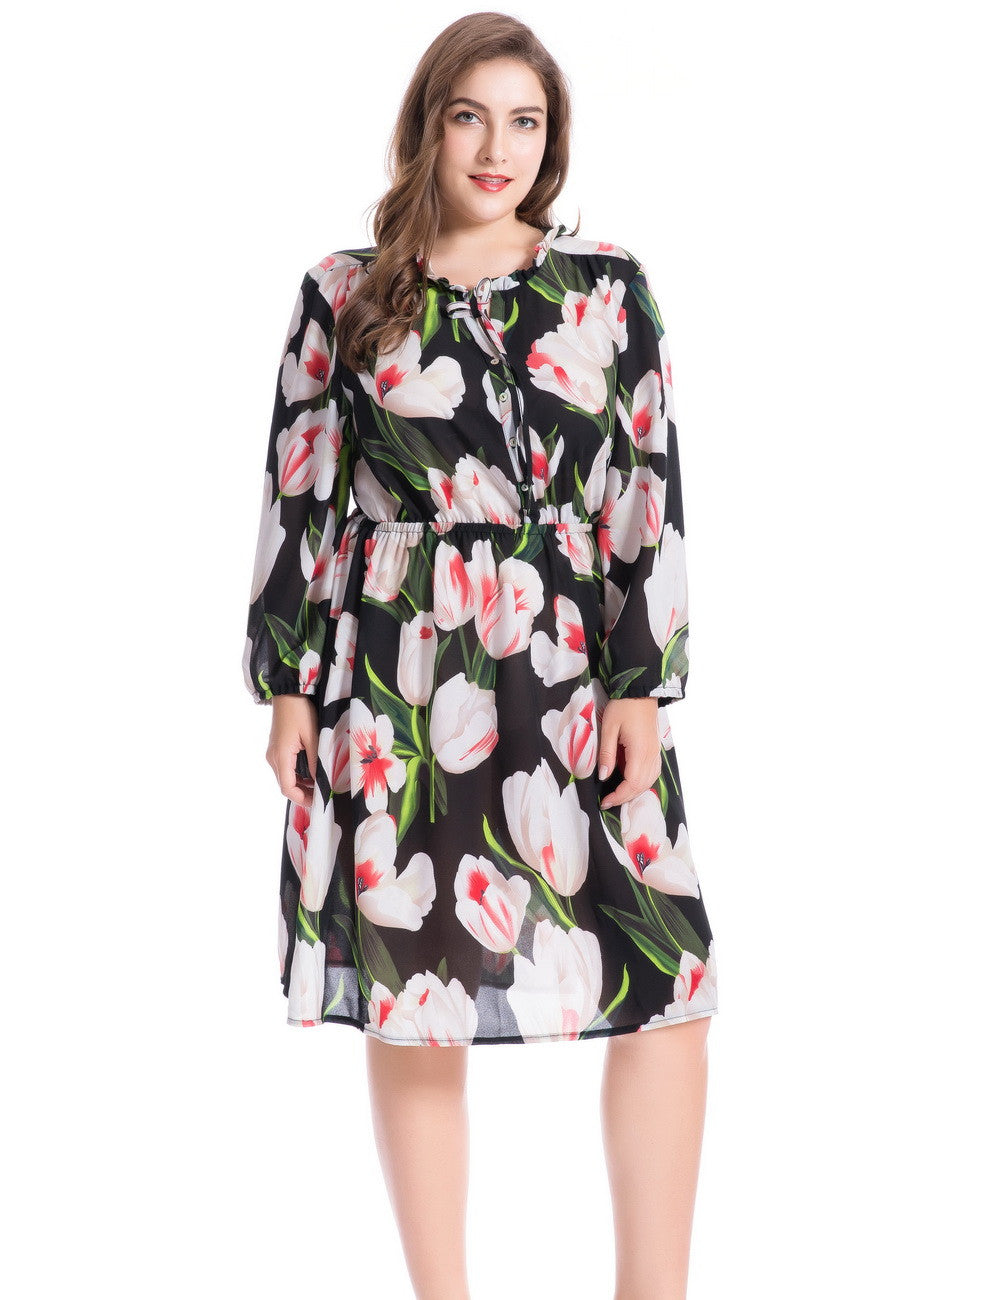 Chicwe Women's Plus Size Lily Floral Printed Dress Ruffled Collar with Split Neckline 1X-4X